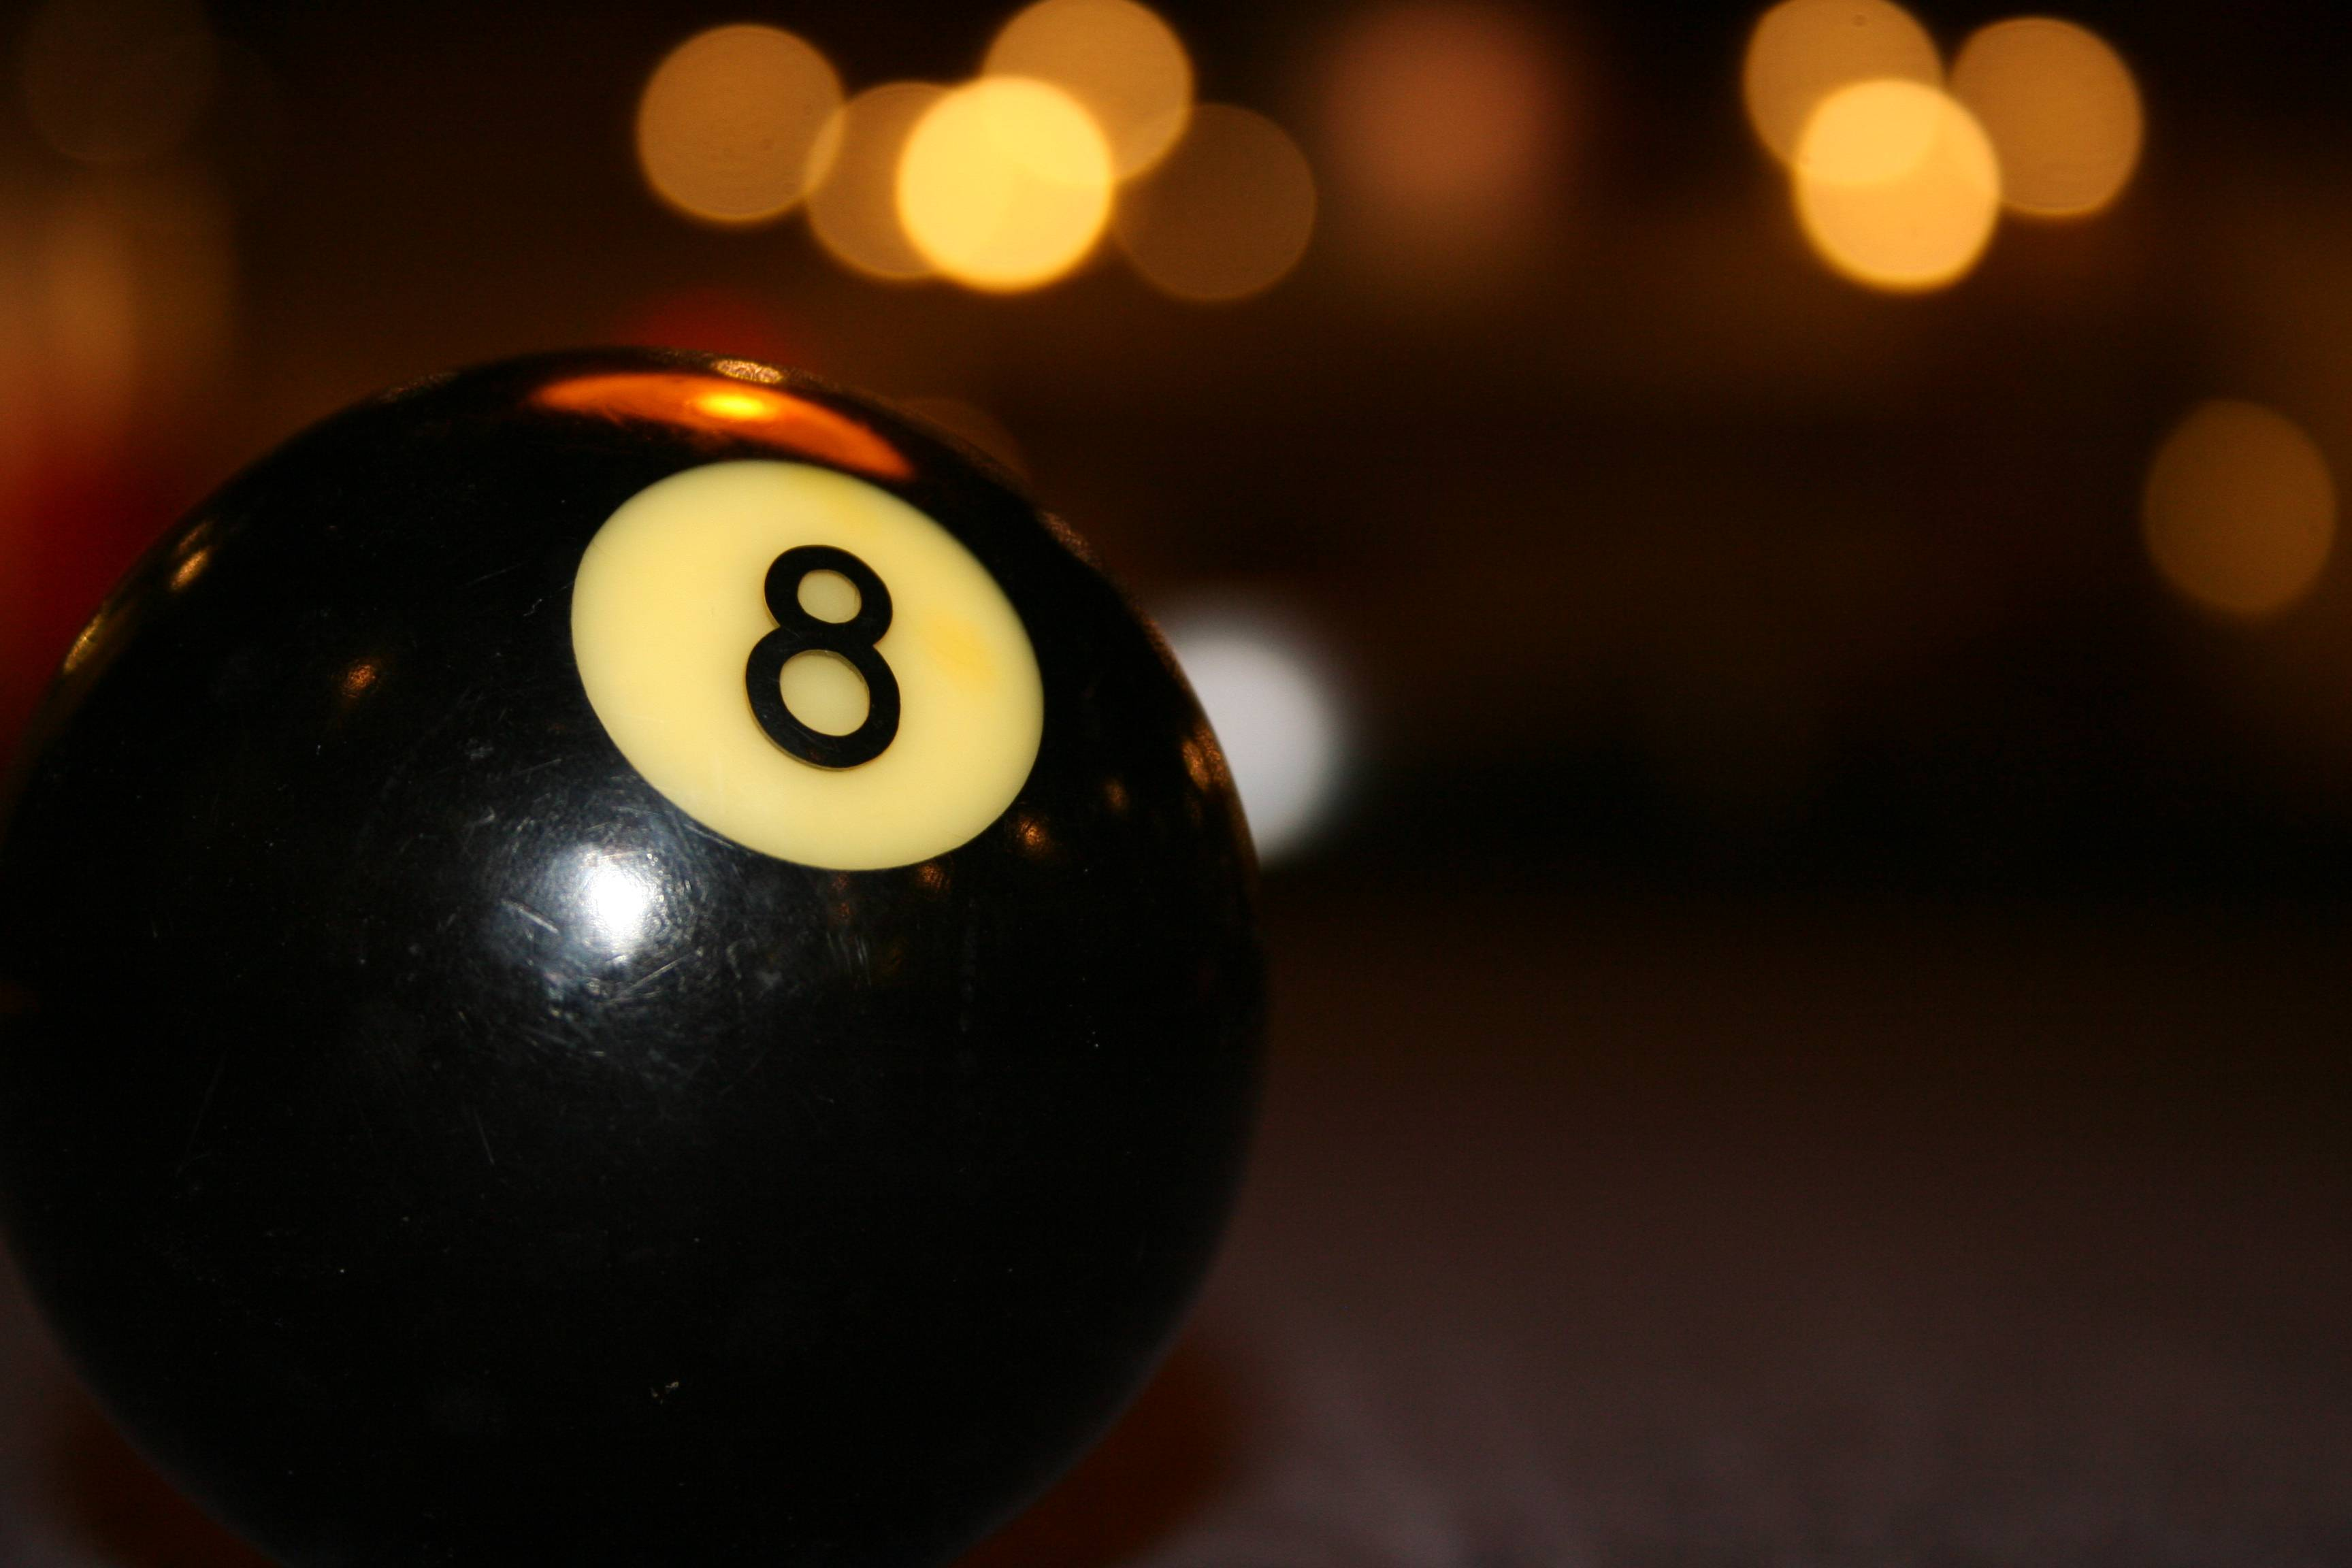 8 ball pool wallpaper - photo #25